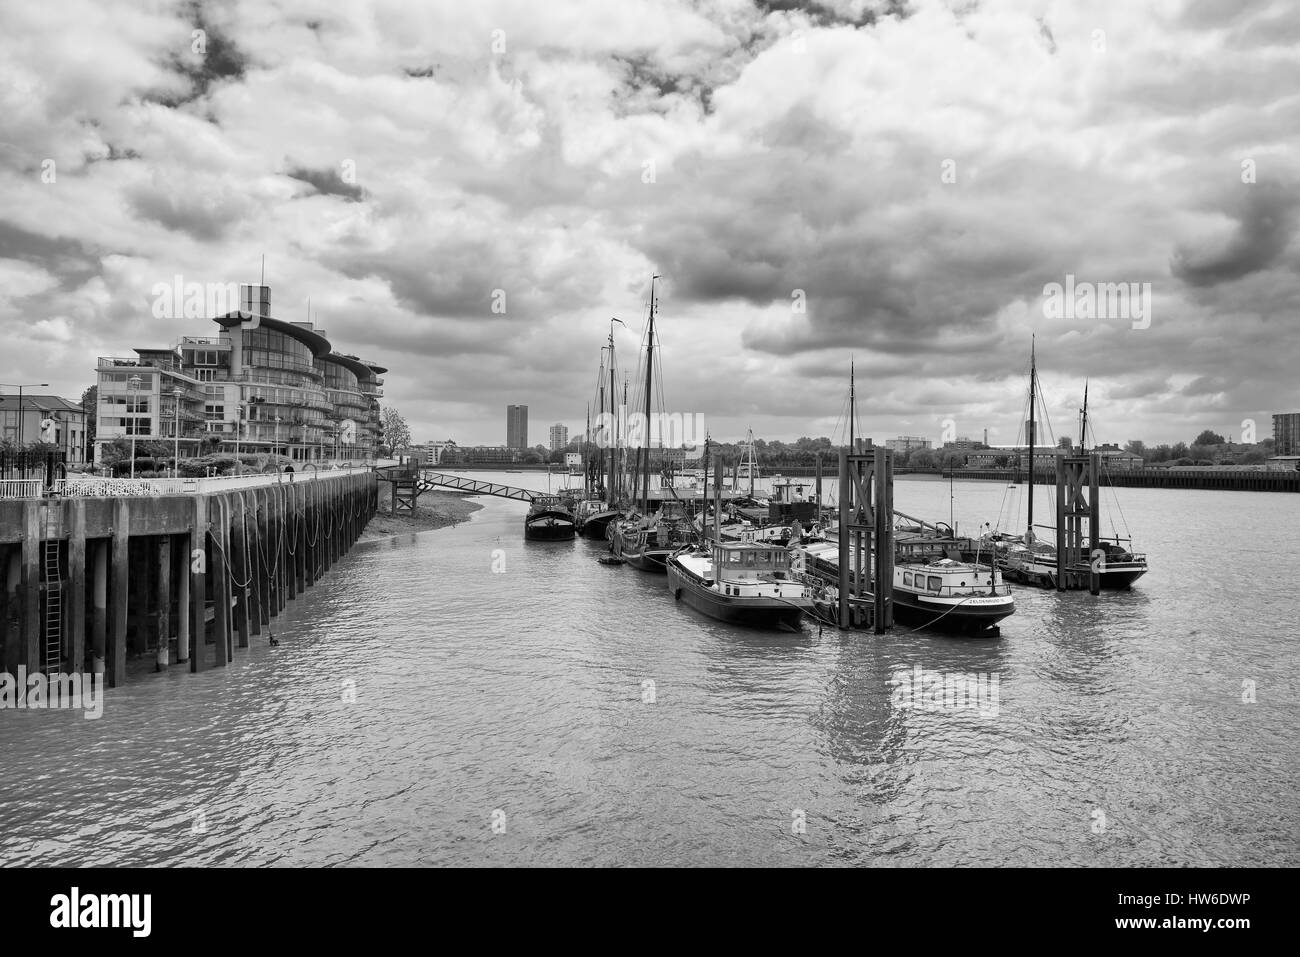 Hermitage Community Moorings, River Thames, London, England Stock Photo